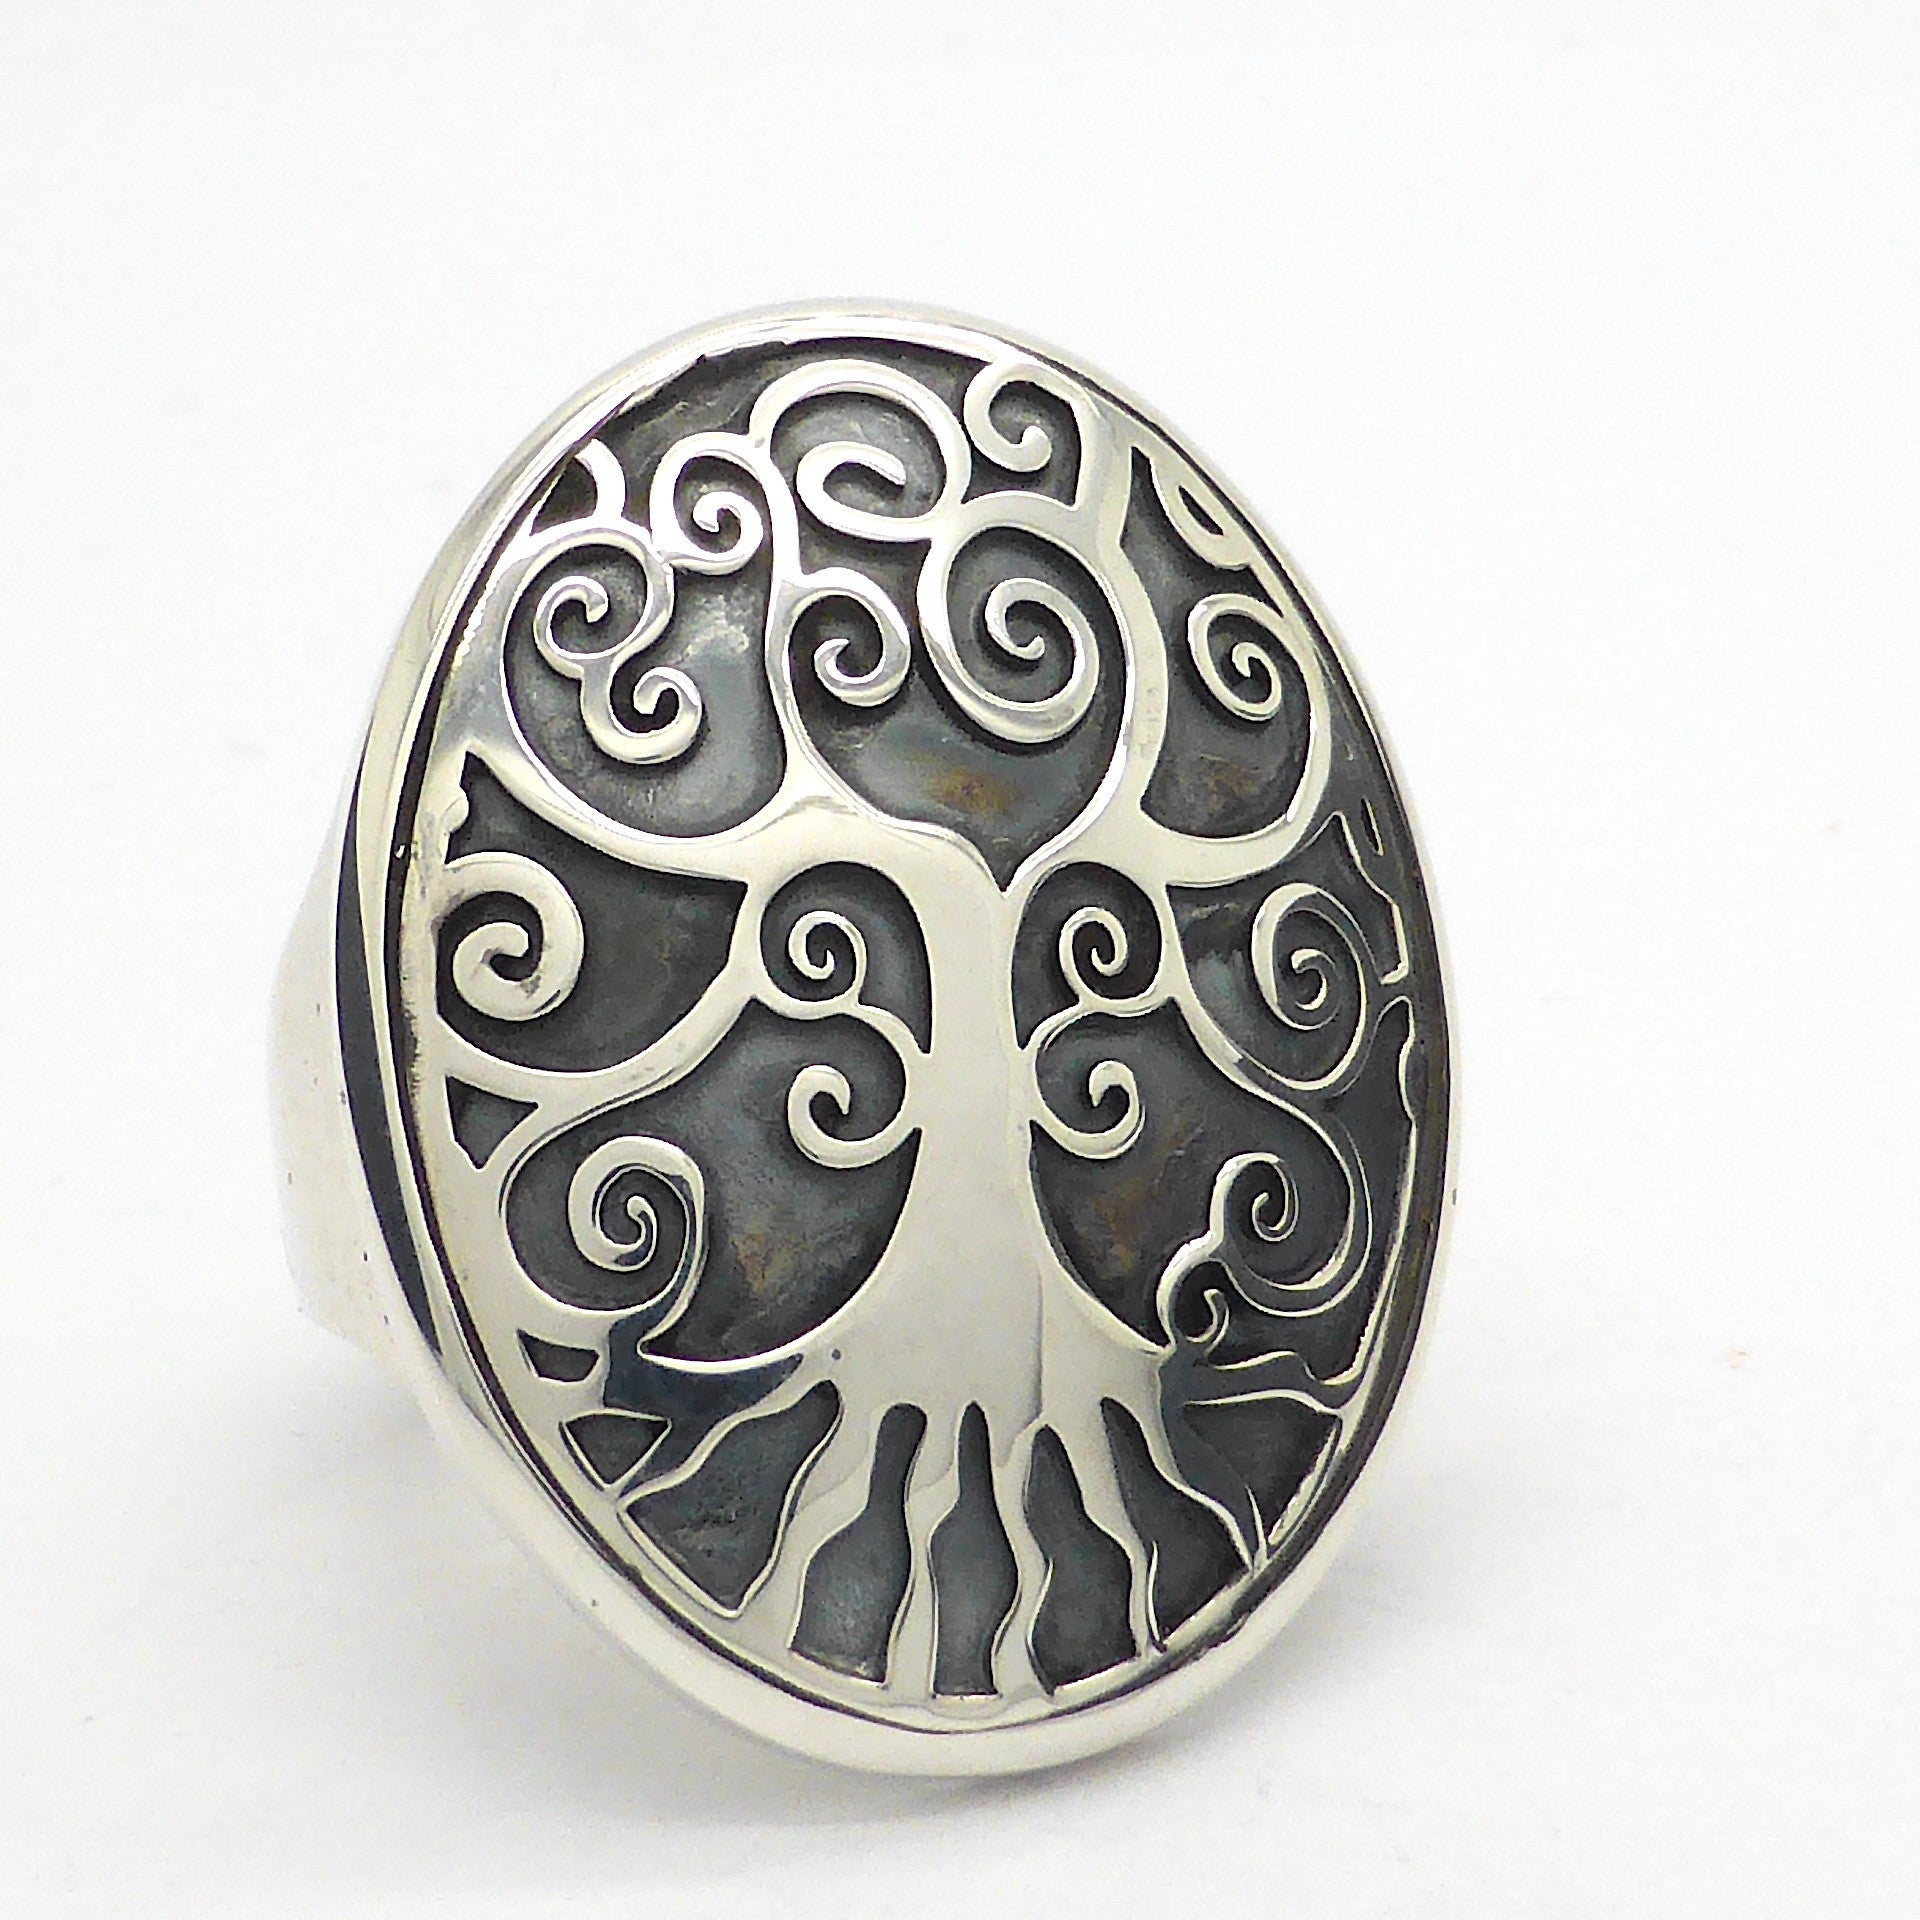 Tree Ring | Italian Design | 925 Sterling Silver | depth and magic | Self adjustable ring size | Australian Supplier | Melbourne Australia